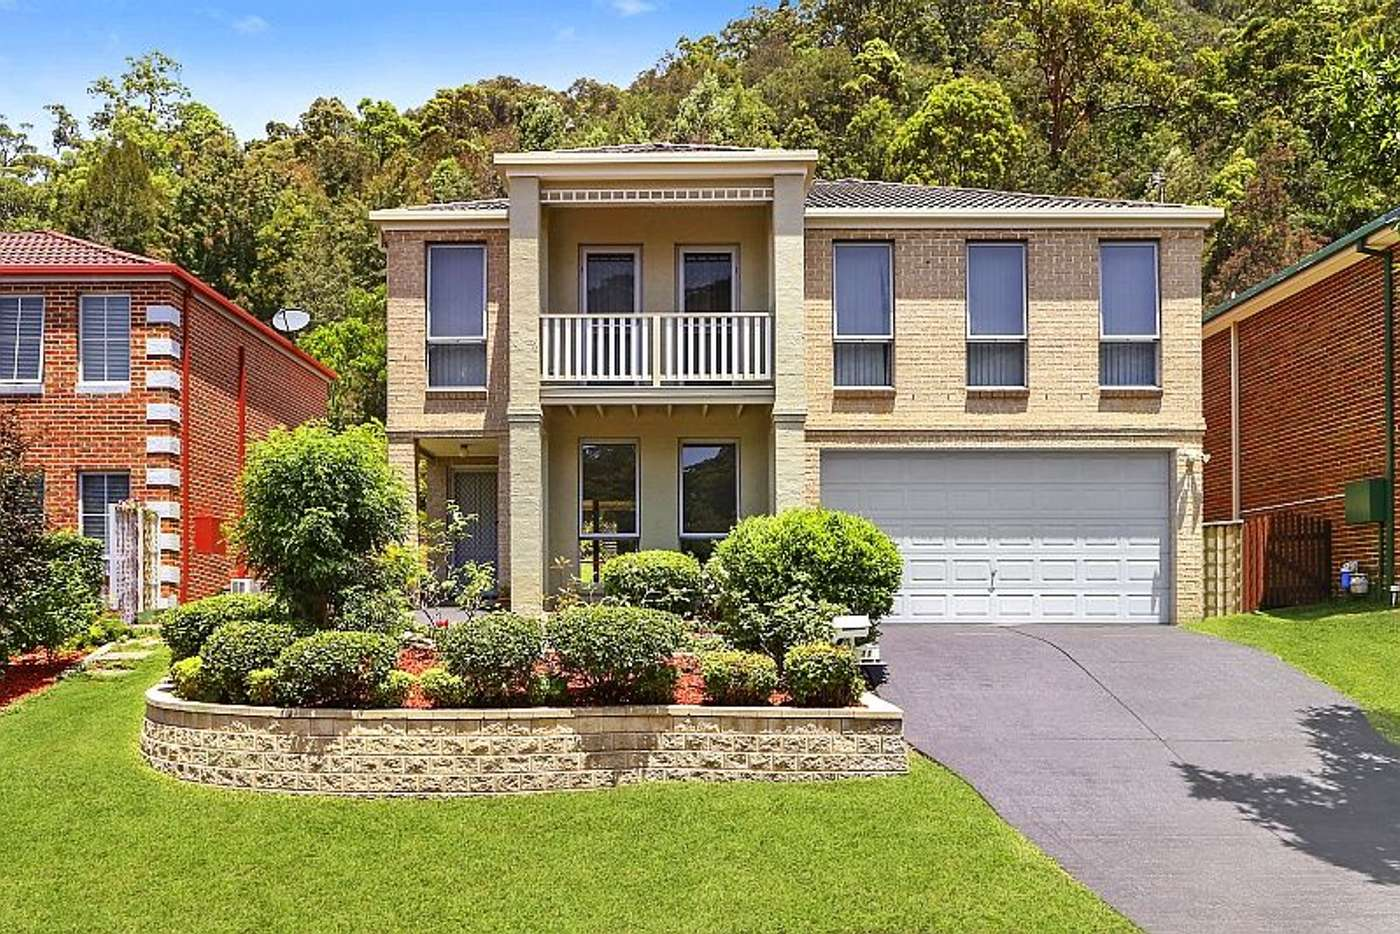 Main view of Homely house listing, 11 Wixstead Close, Point Clare NSW 2250